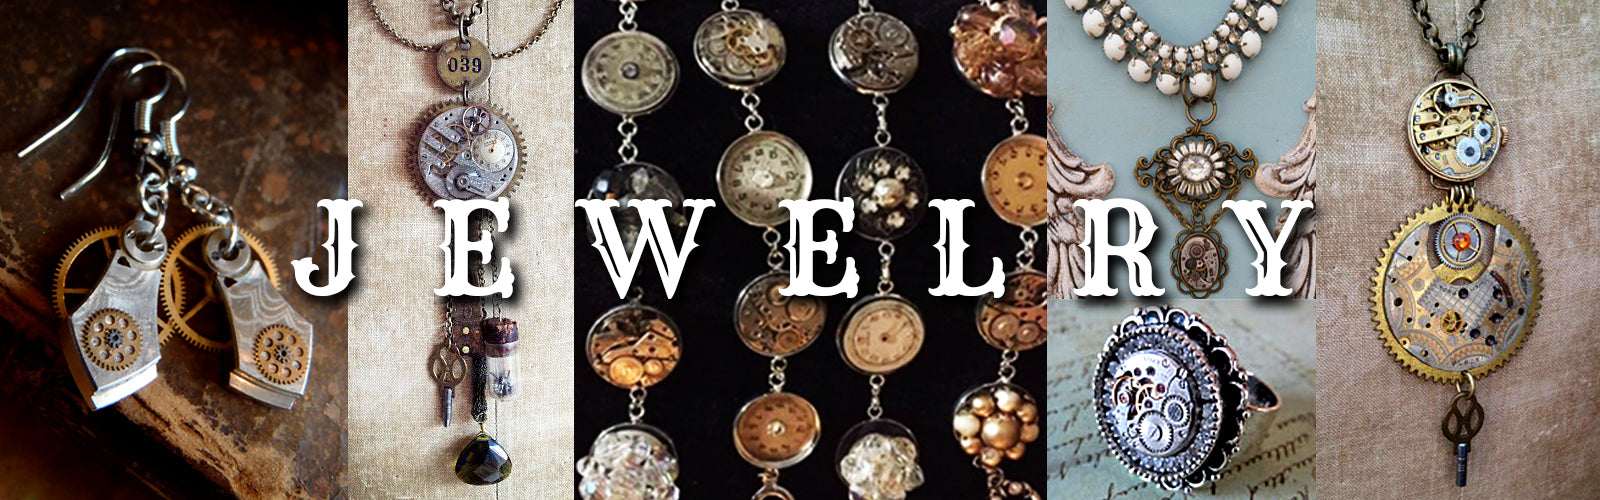 Steampunkjunq Jewelry